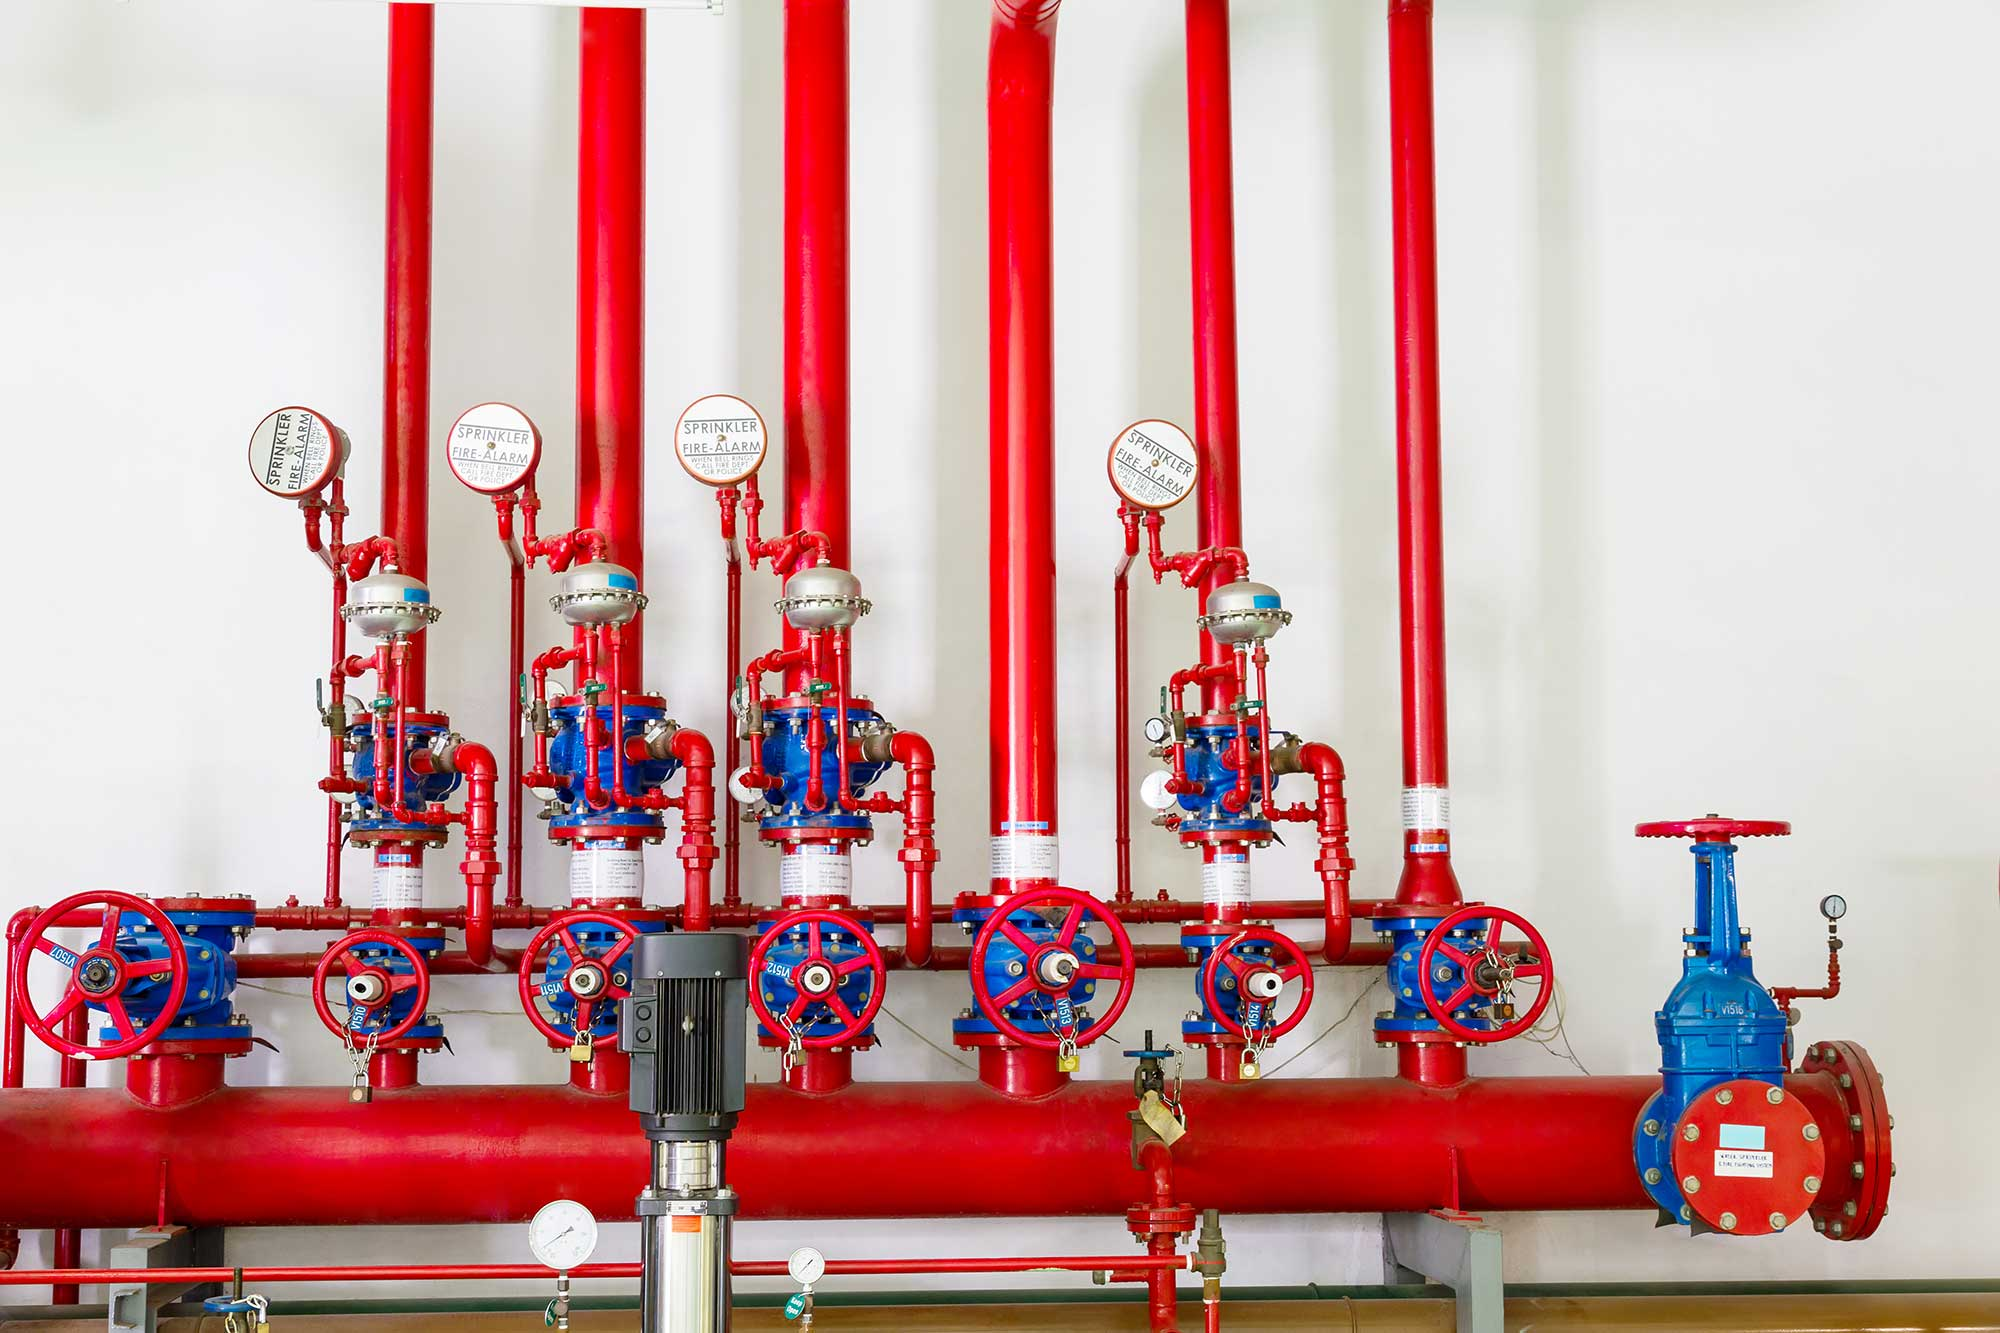 Fire suppression systems seattle western washington for Room design method nfpa 13